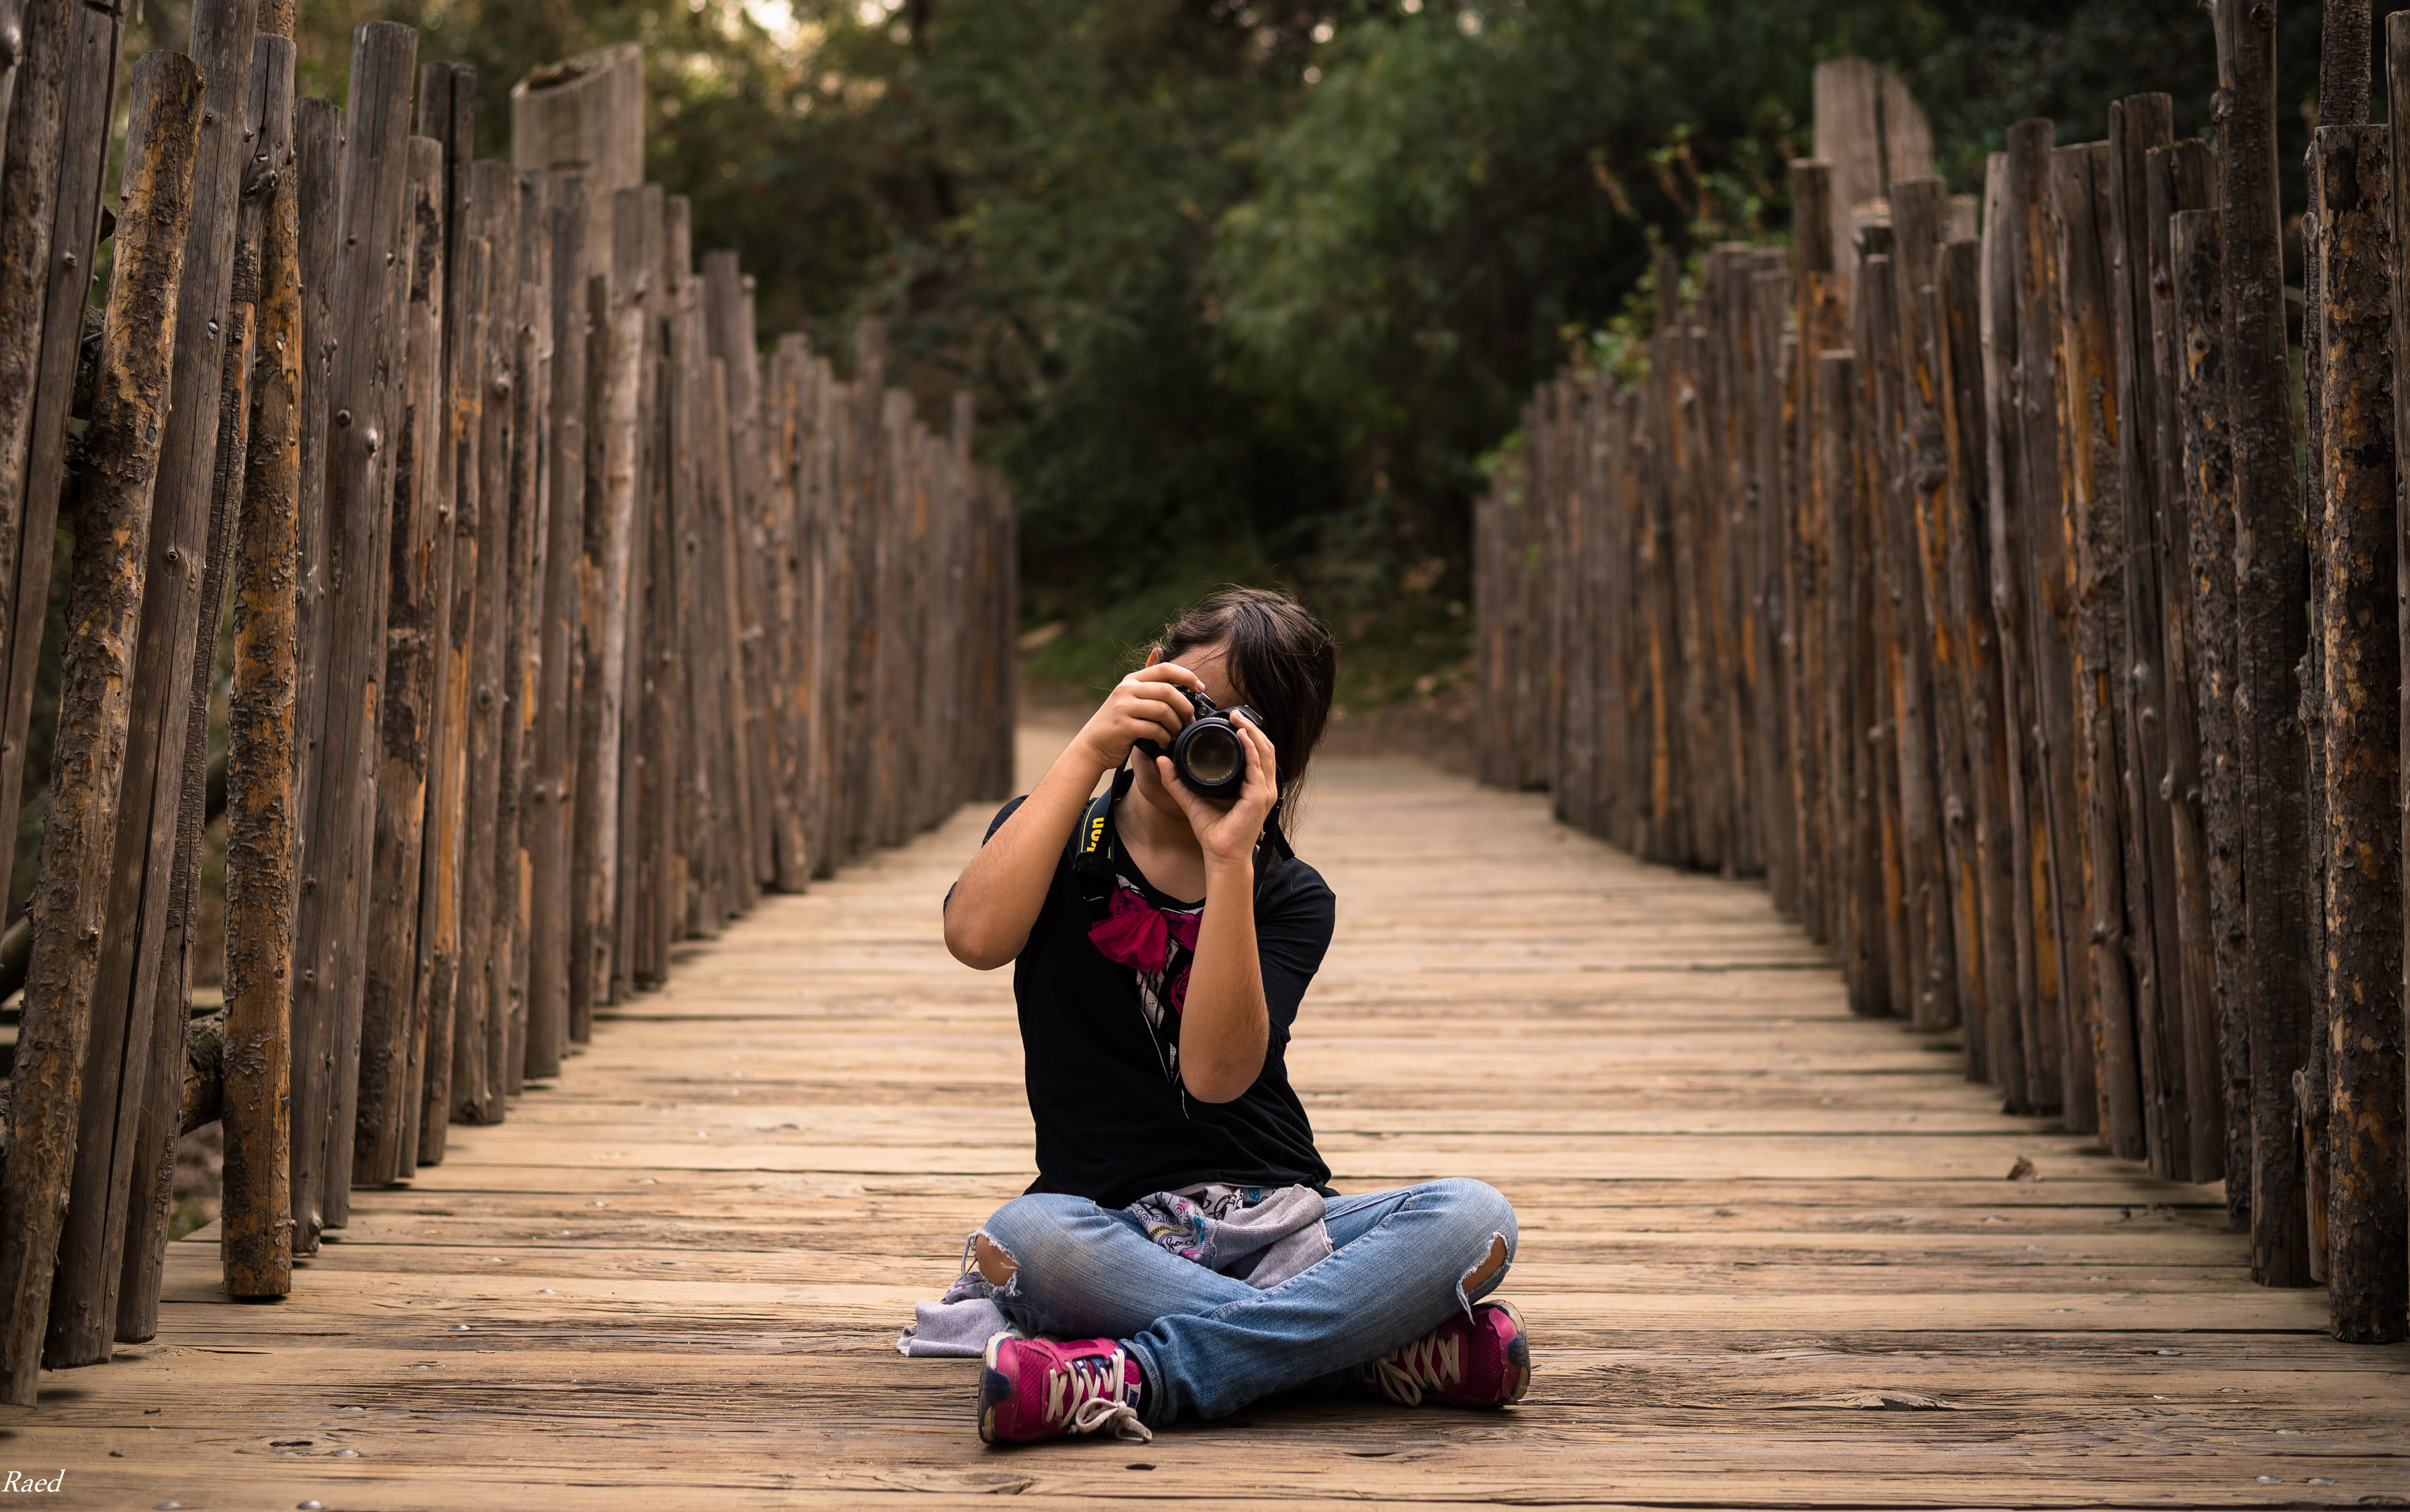 Learning – The Young Photographer | My Camera Journal